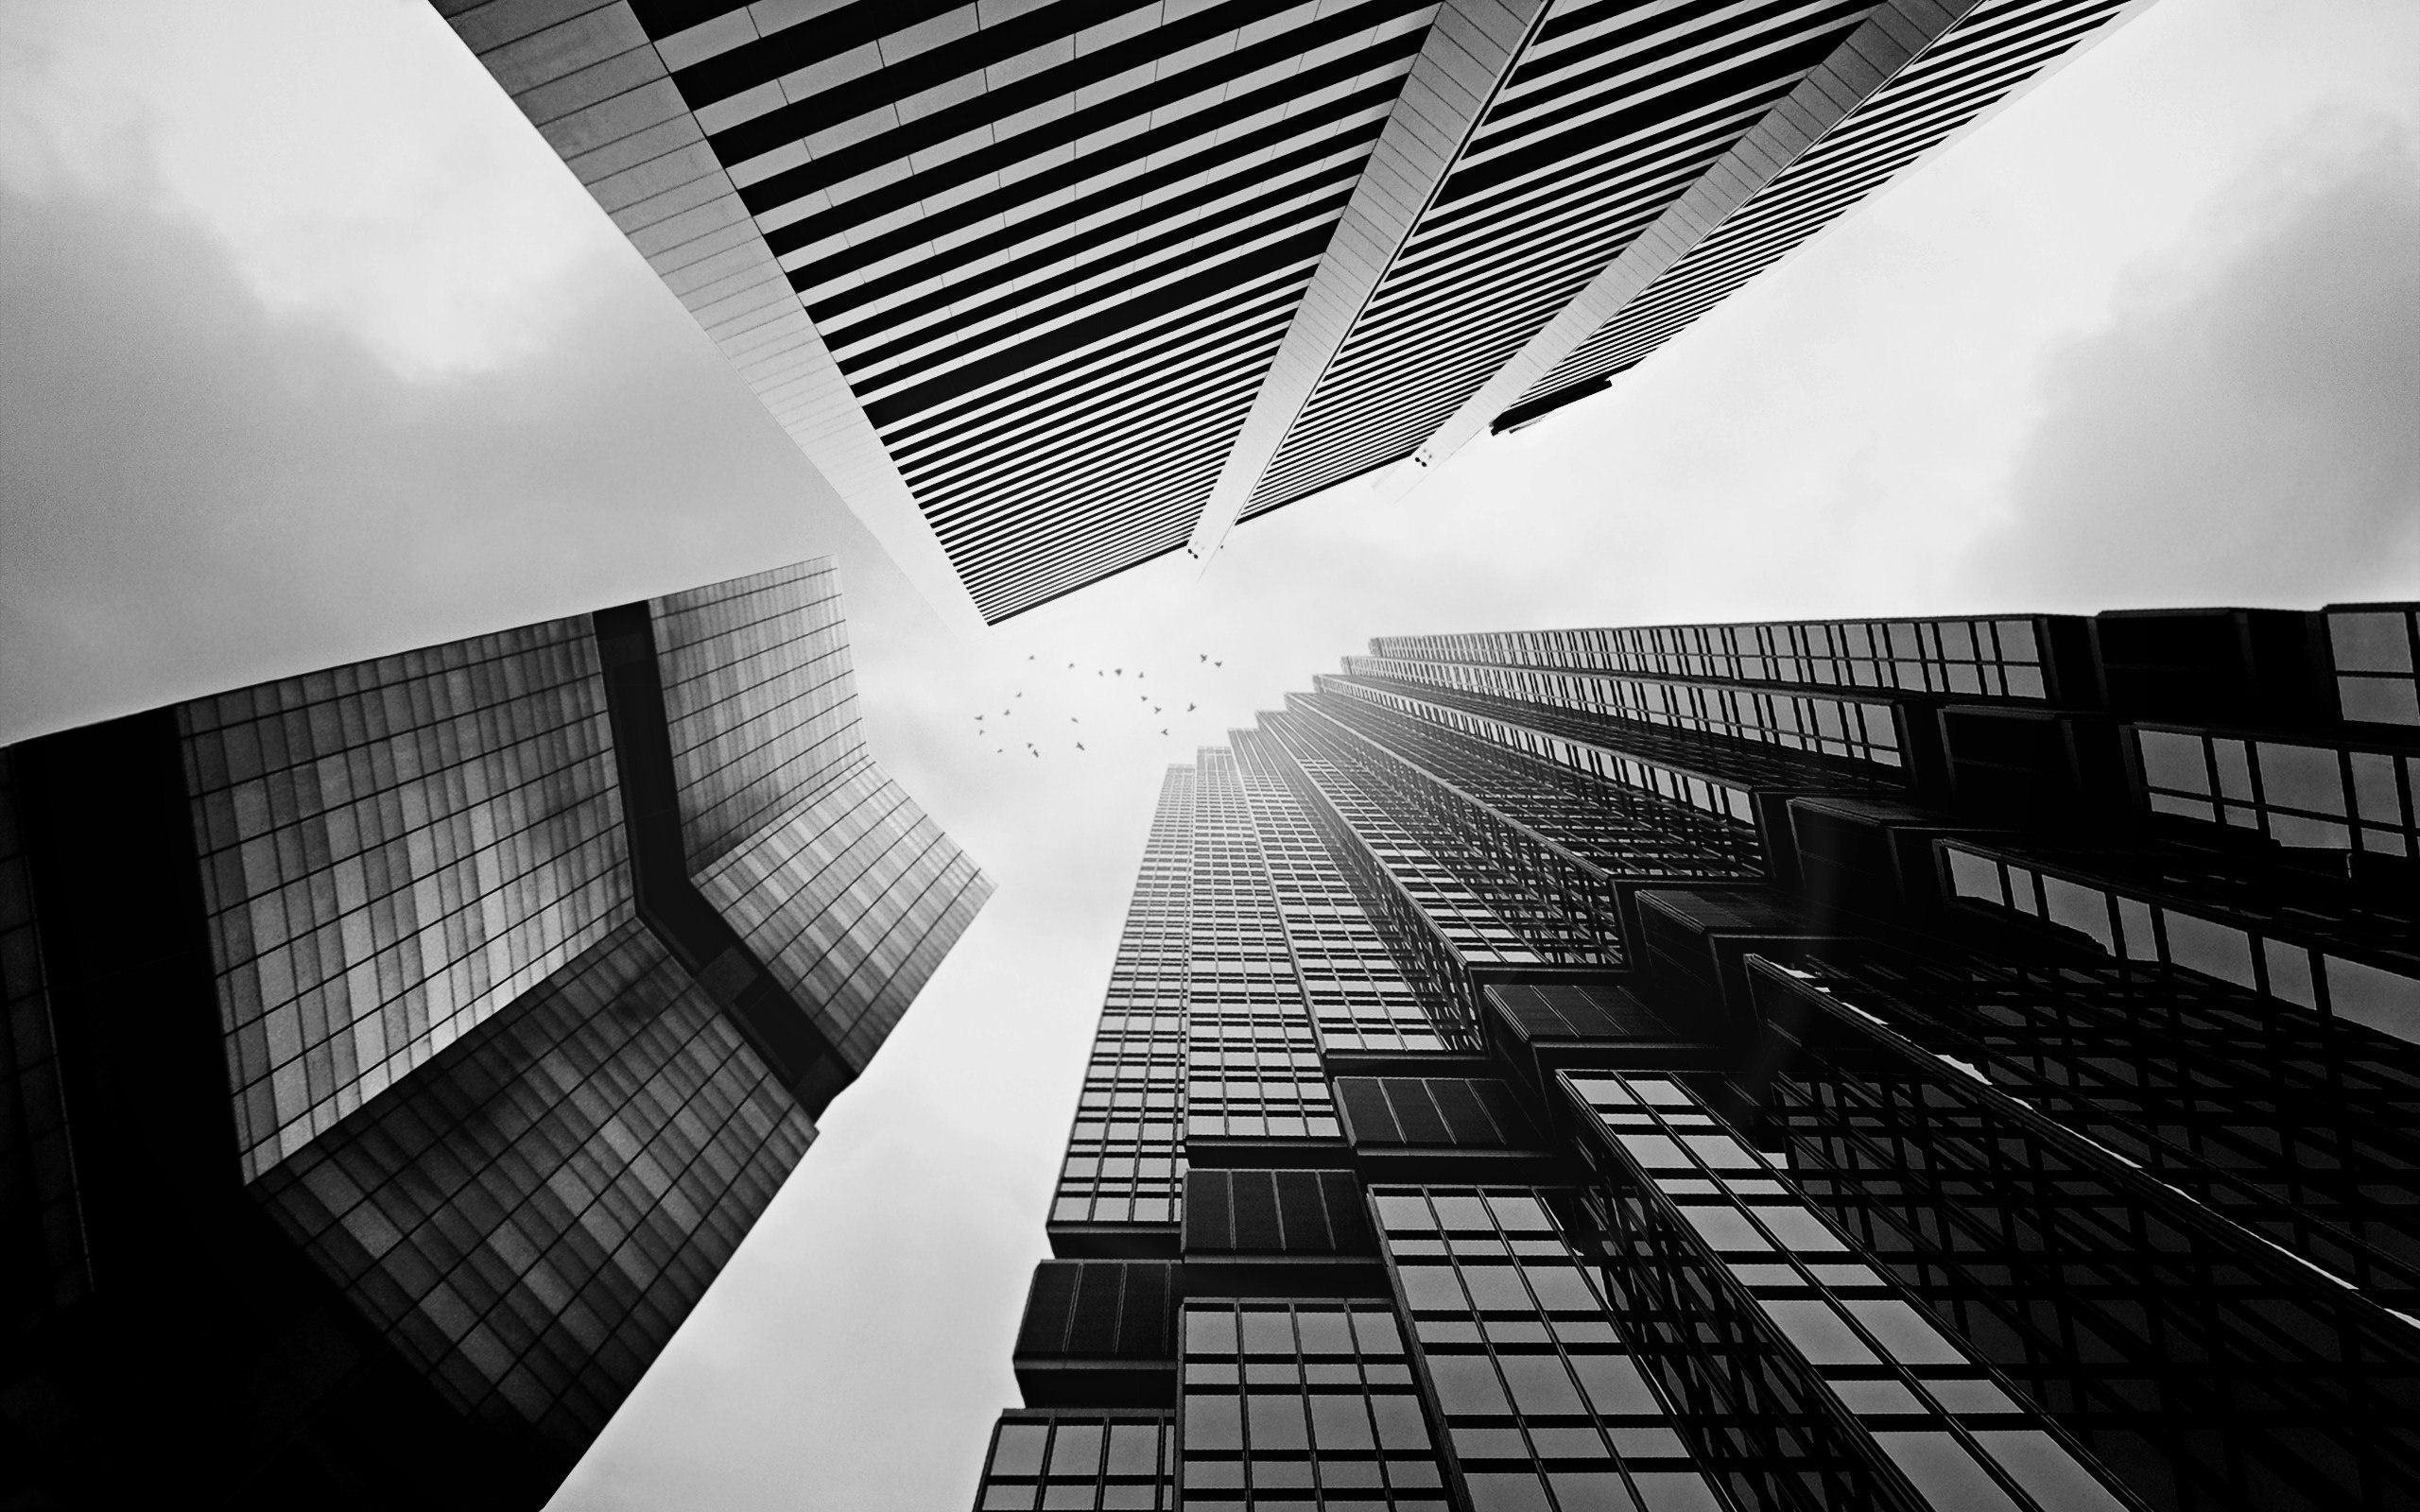 skyscrapers-black-and-white-monochrome-modern-buildings-business-centers_1_1.jpg